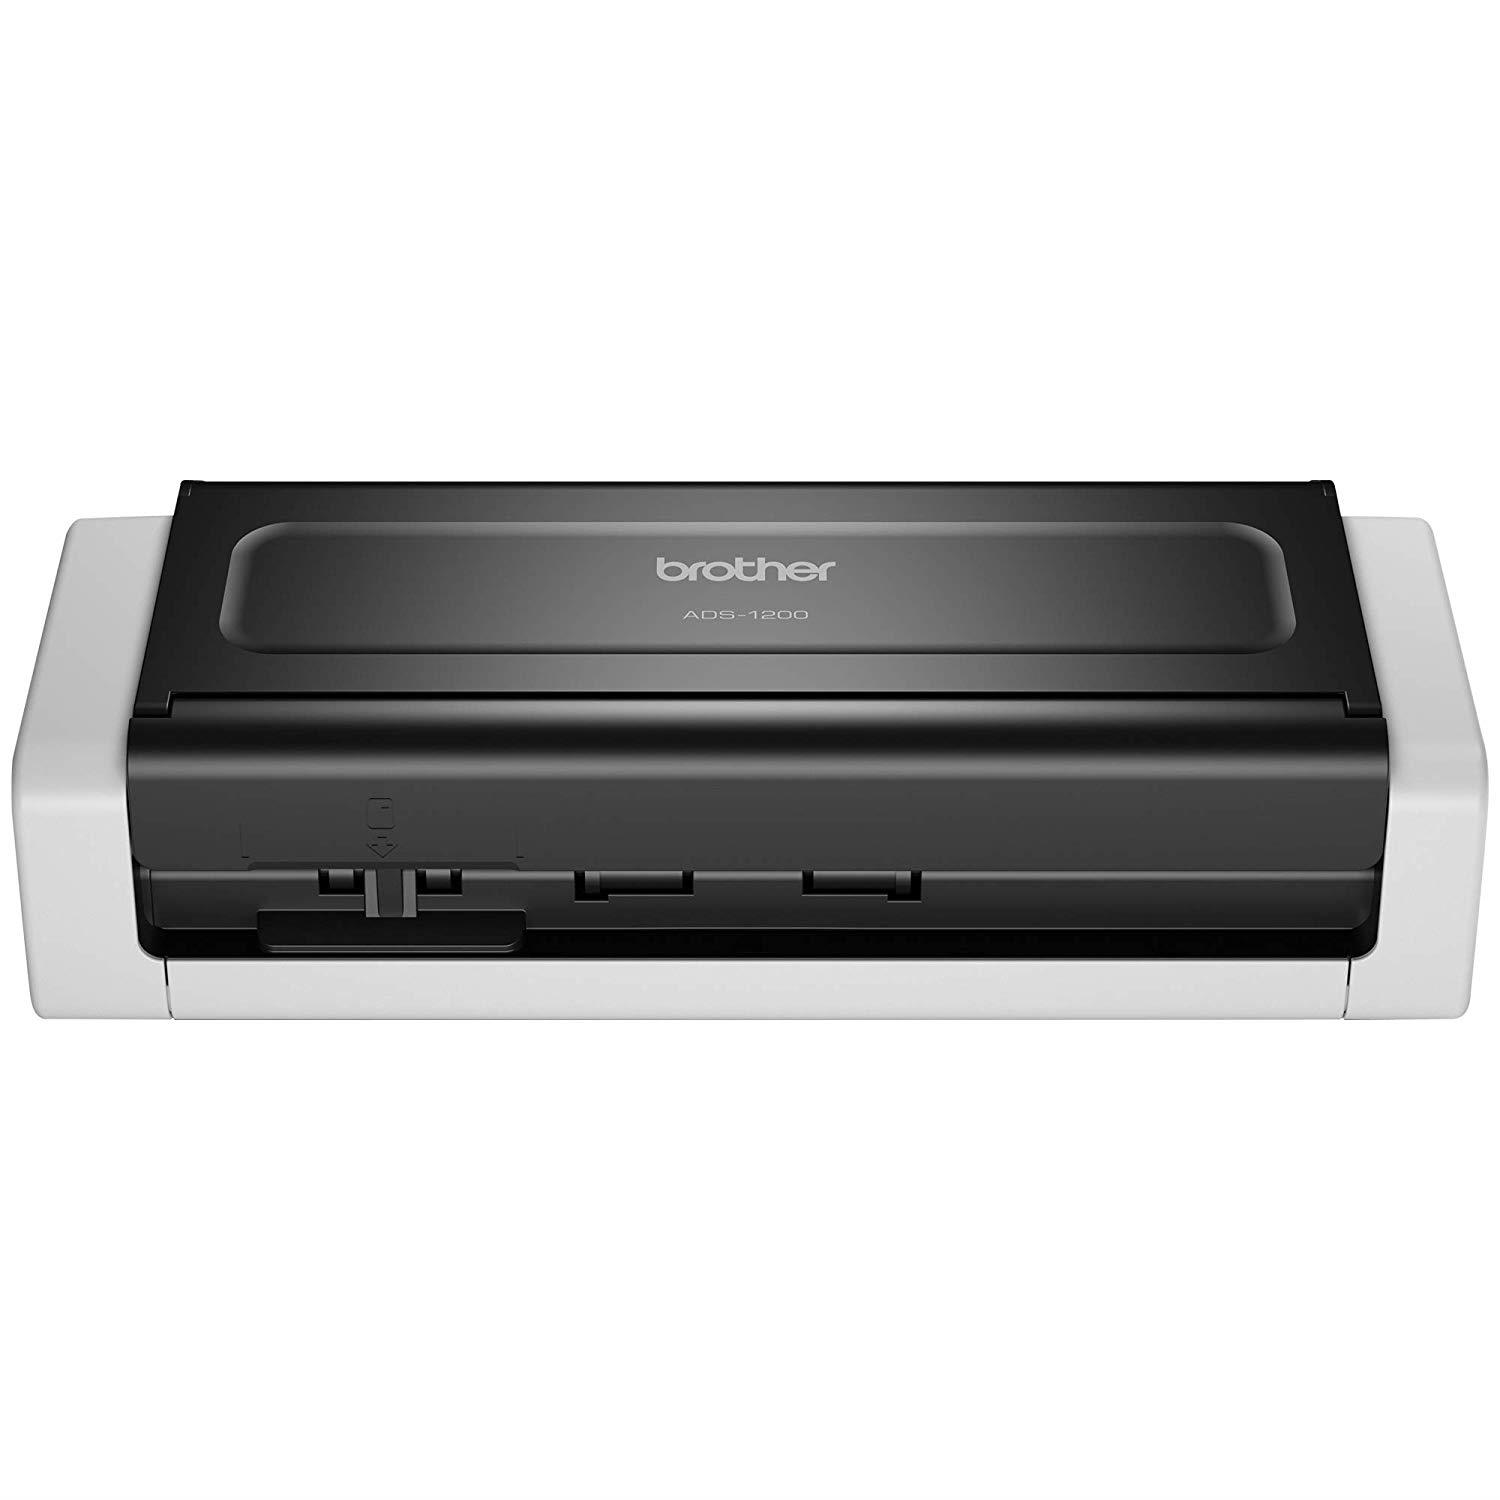 Brother ADS-1200 Document Scanner | Compact | PC Connected | Desktop